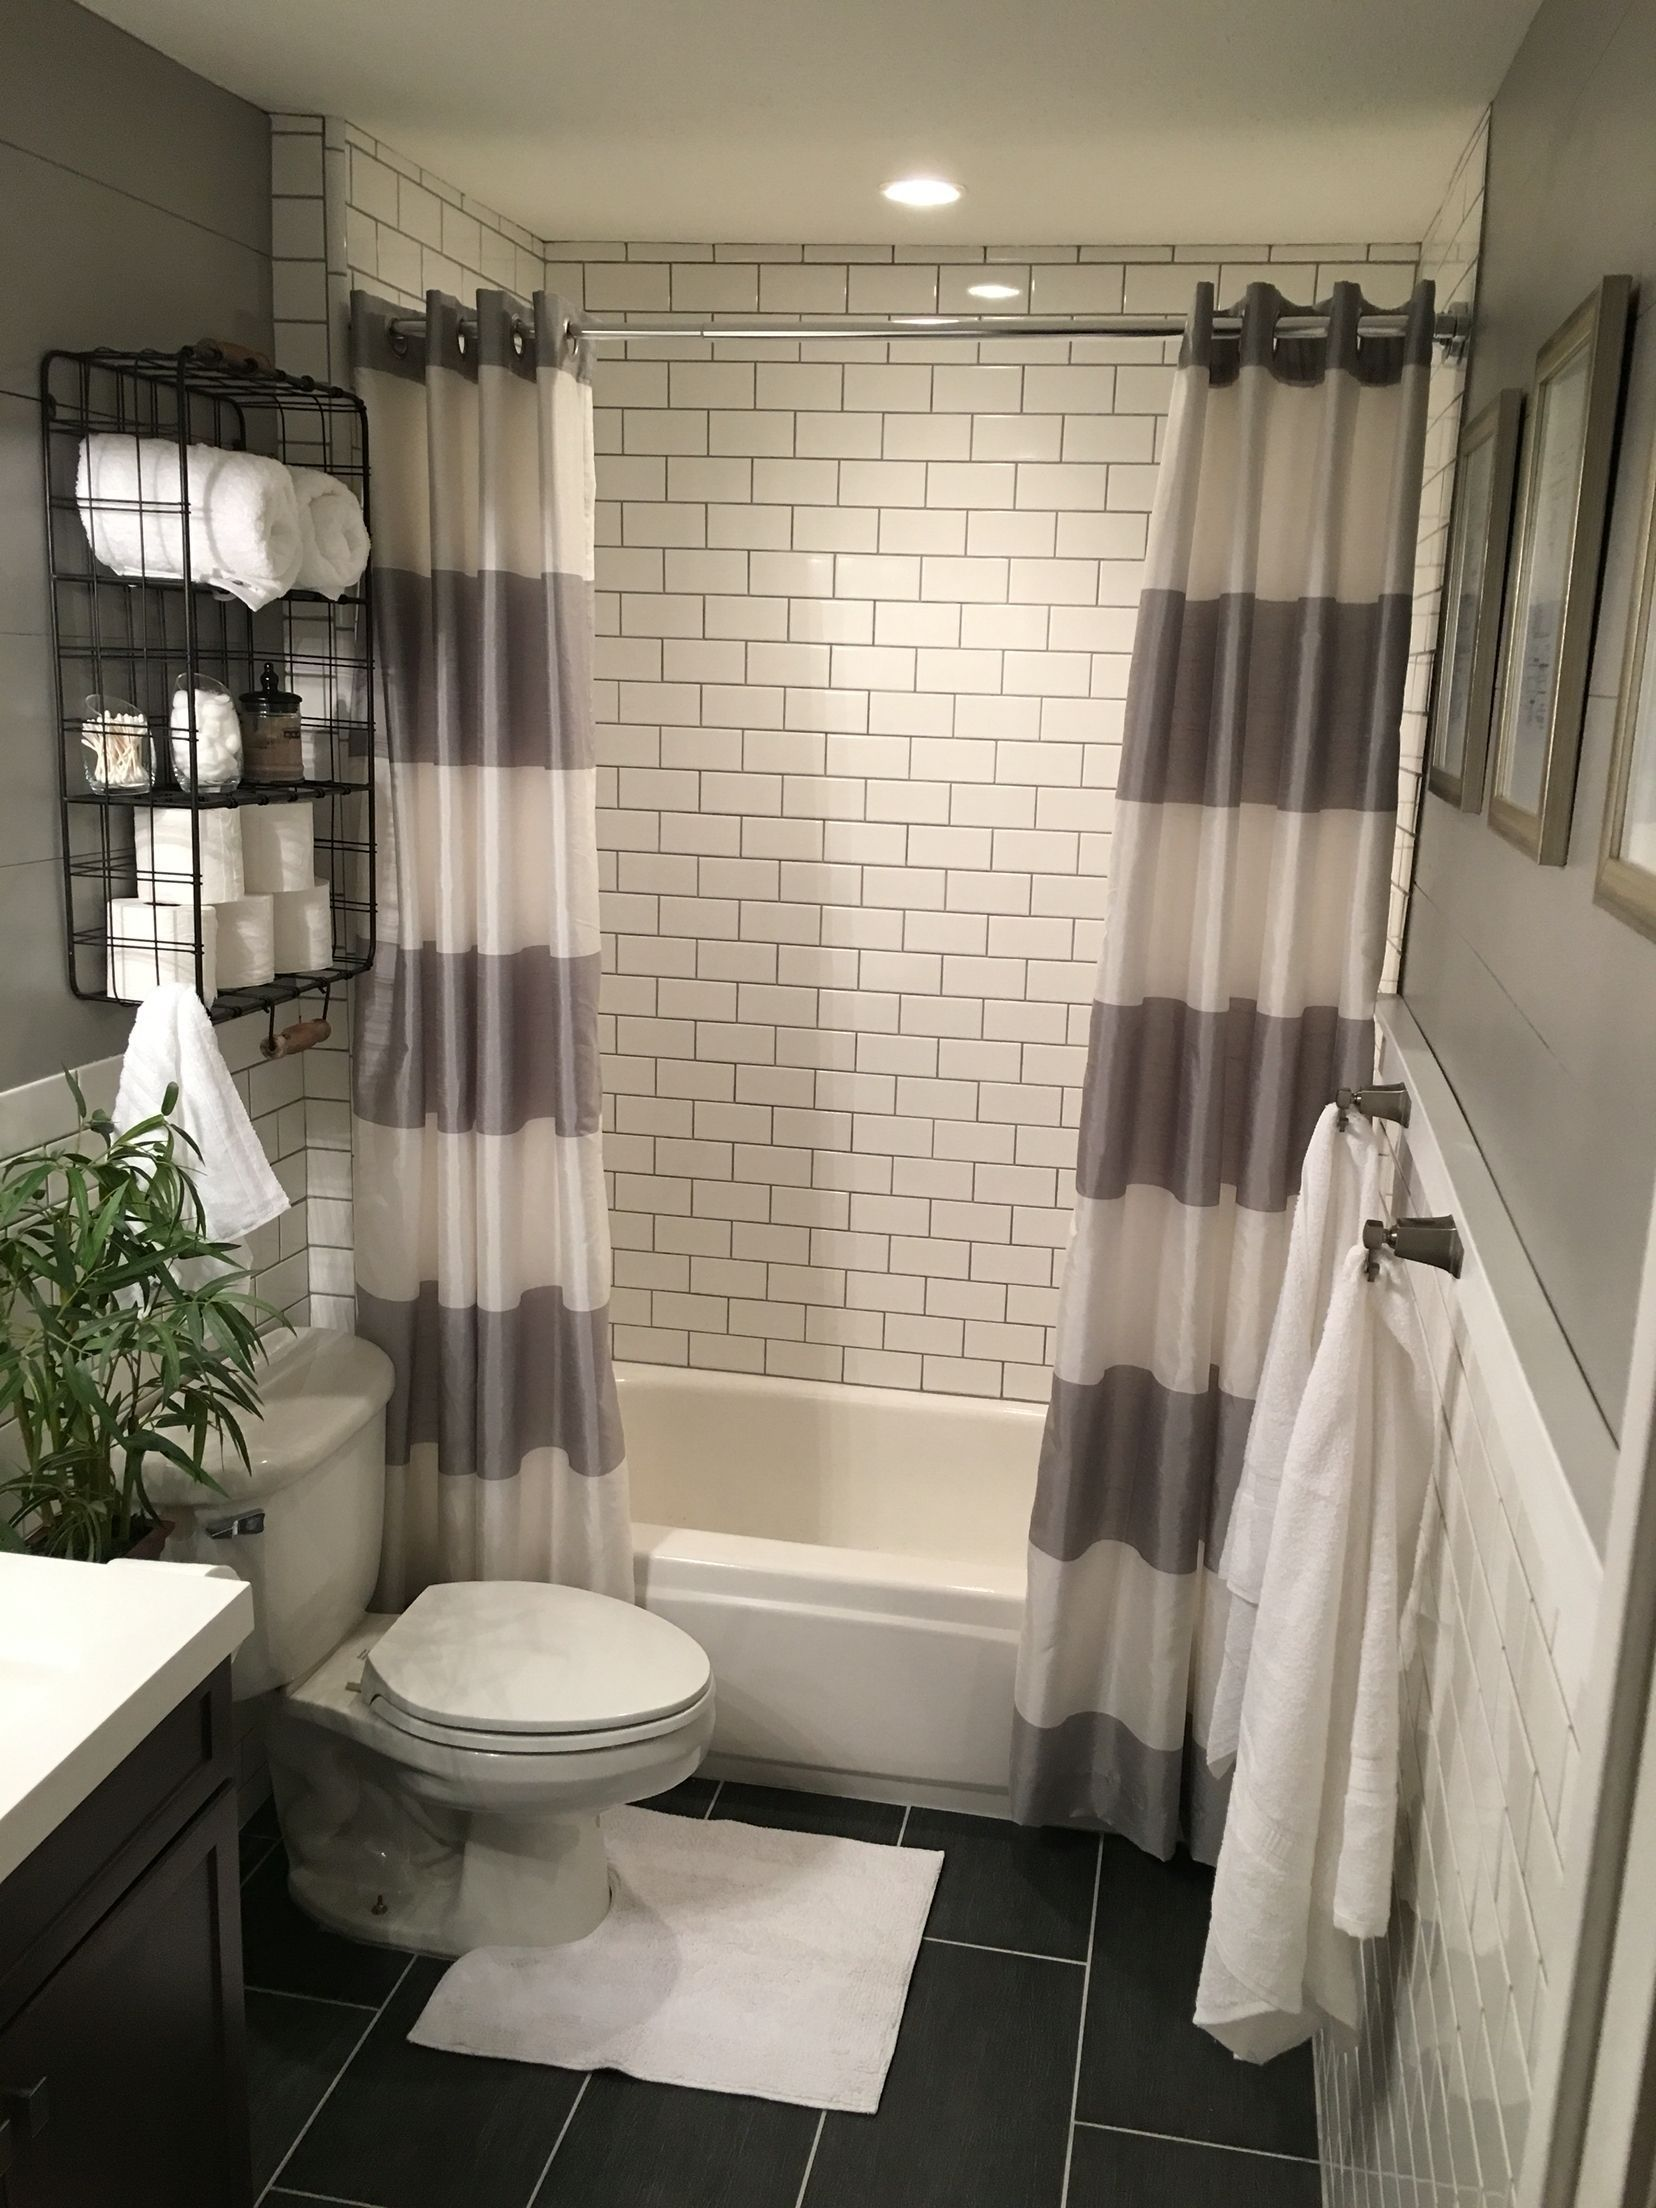 47 Guest Bathroom Makeover Ideas On A Budget #bathroomdecoration